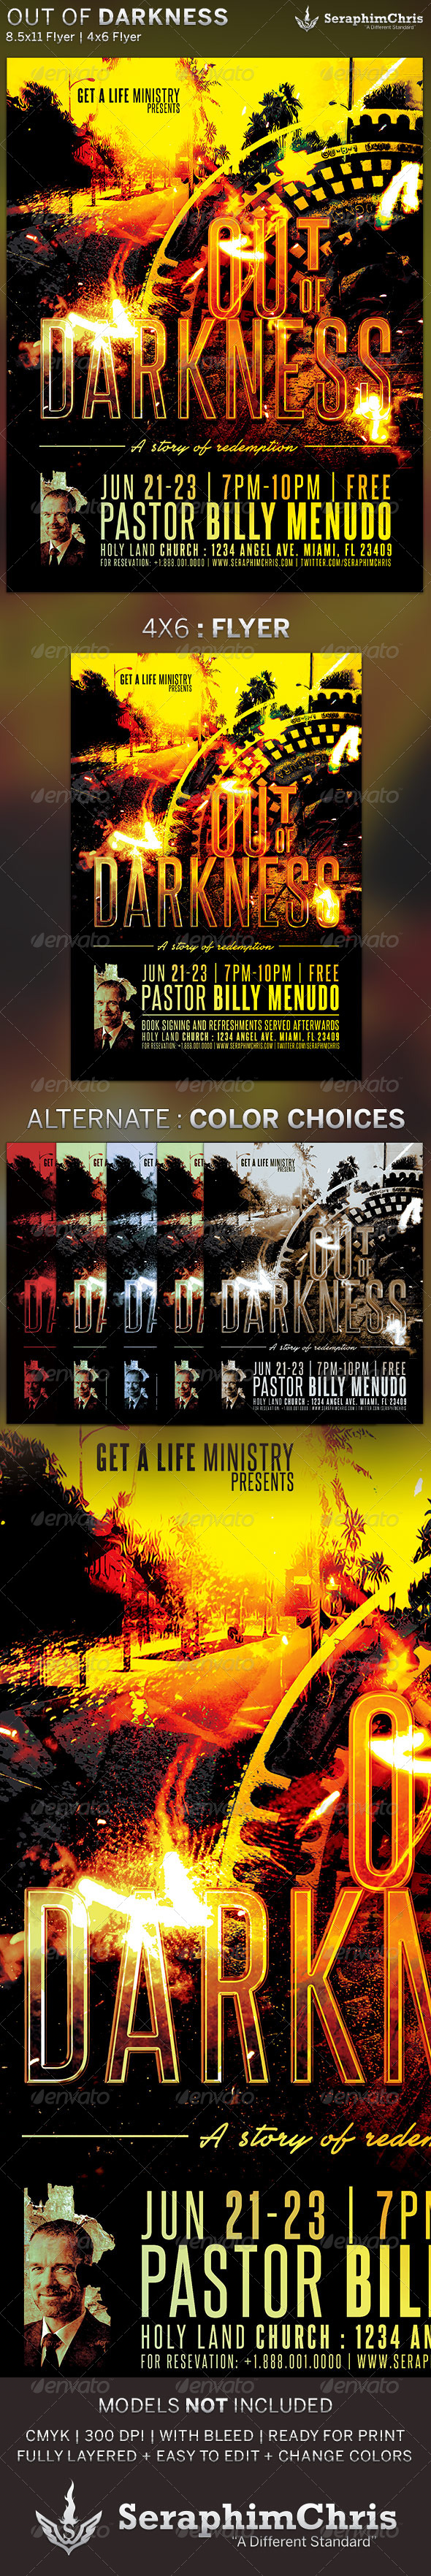 Out of Darkness: Church Flyer Template - Church Flyers